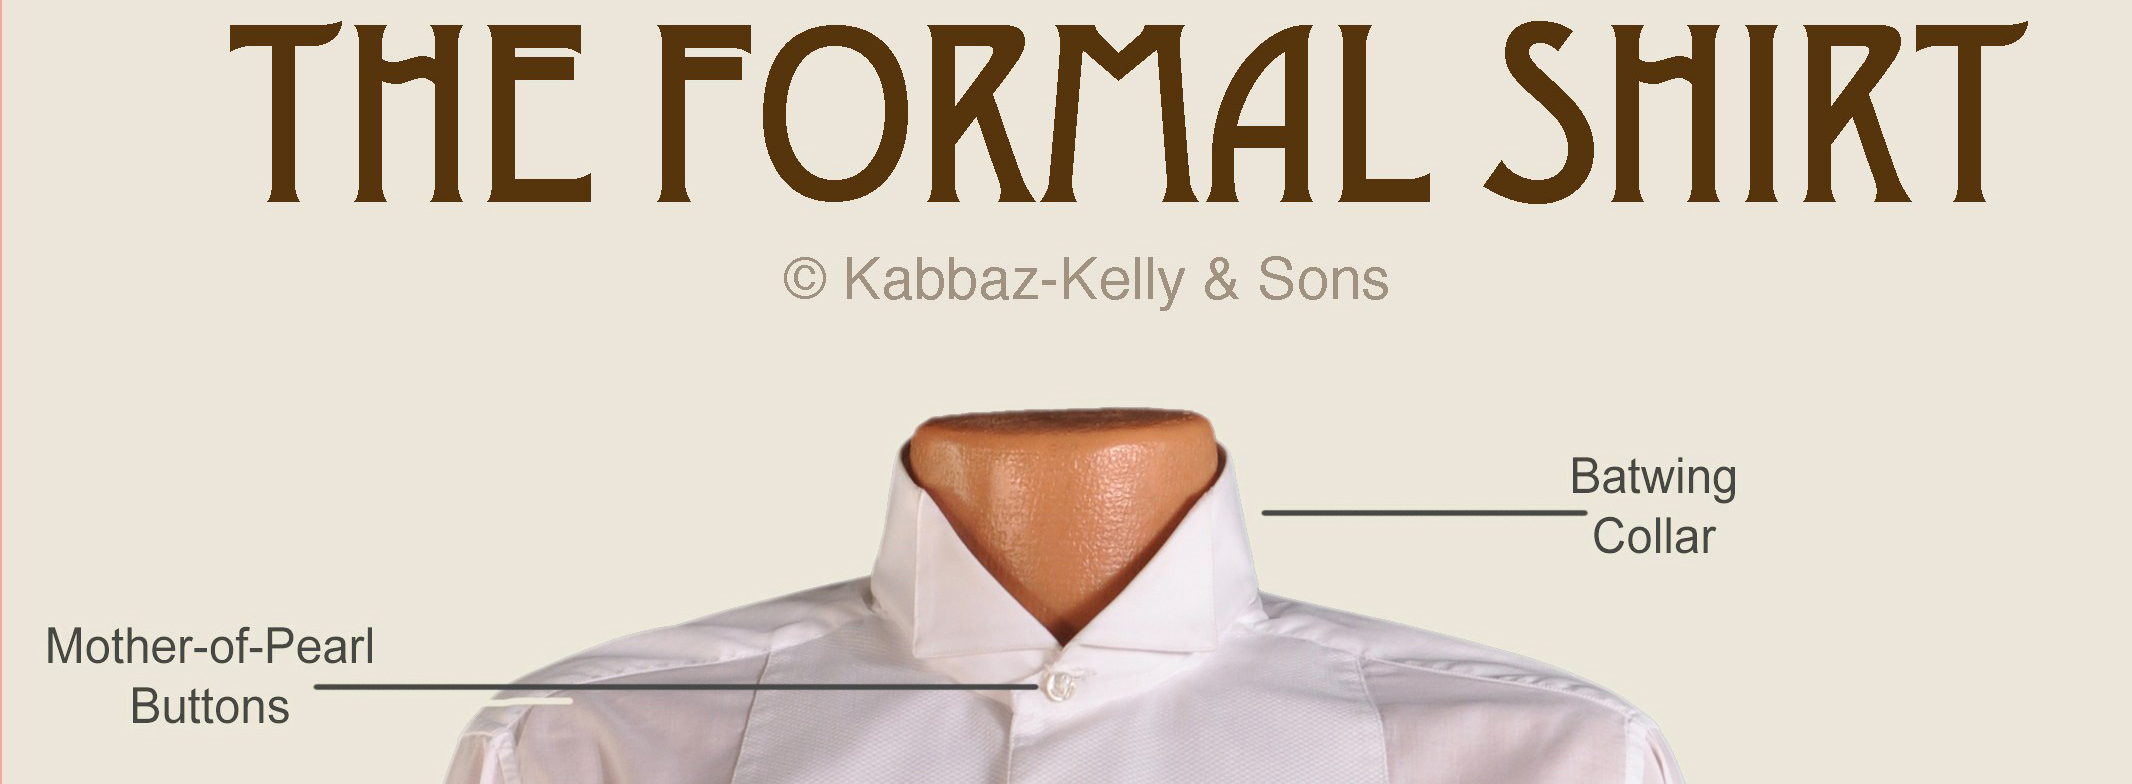 The Anatomy of a Formal Shirt | Styleforum